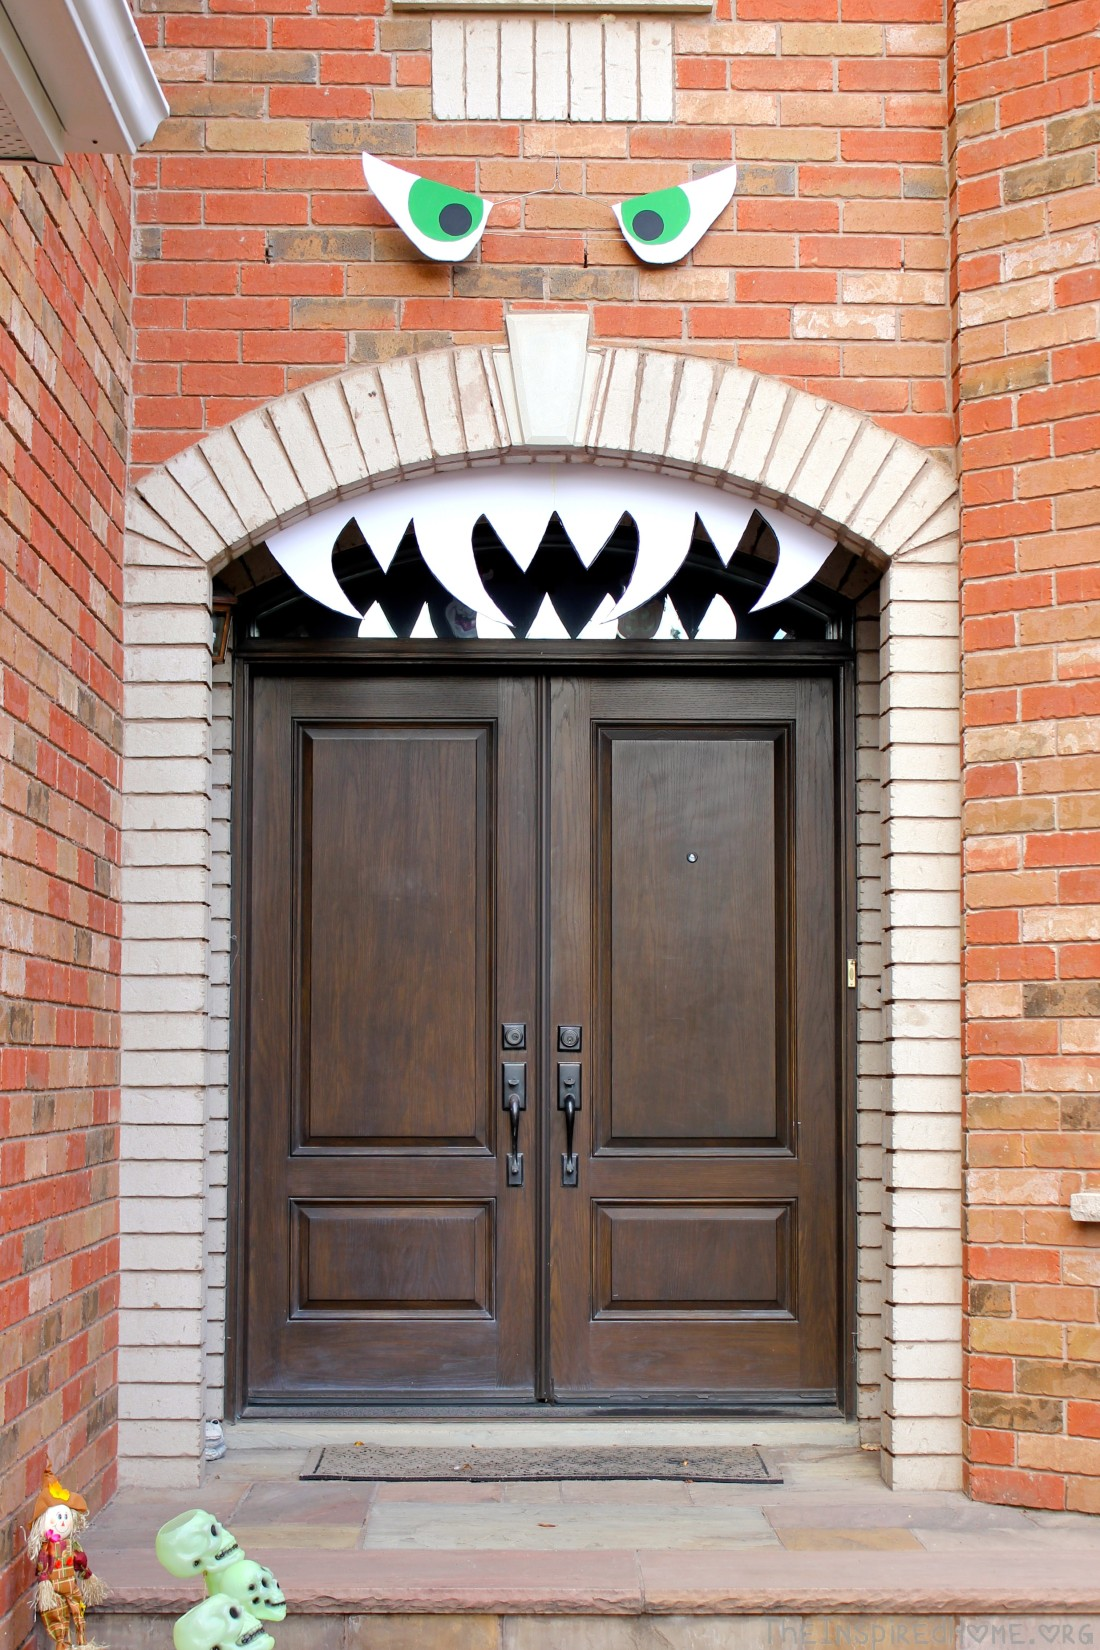 TheInspiredHome.Org // DIY Halloween Decorations // Outdoor Halloween House Face